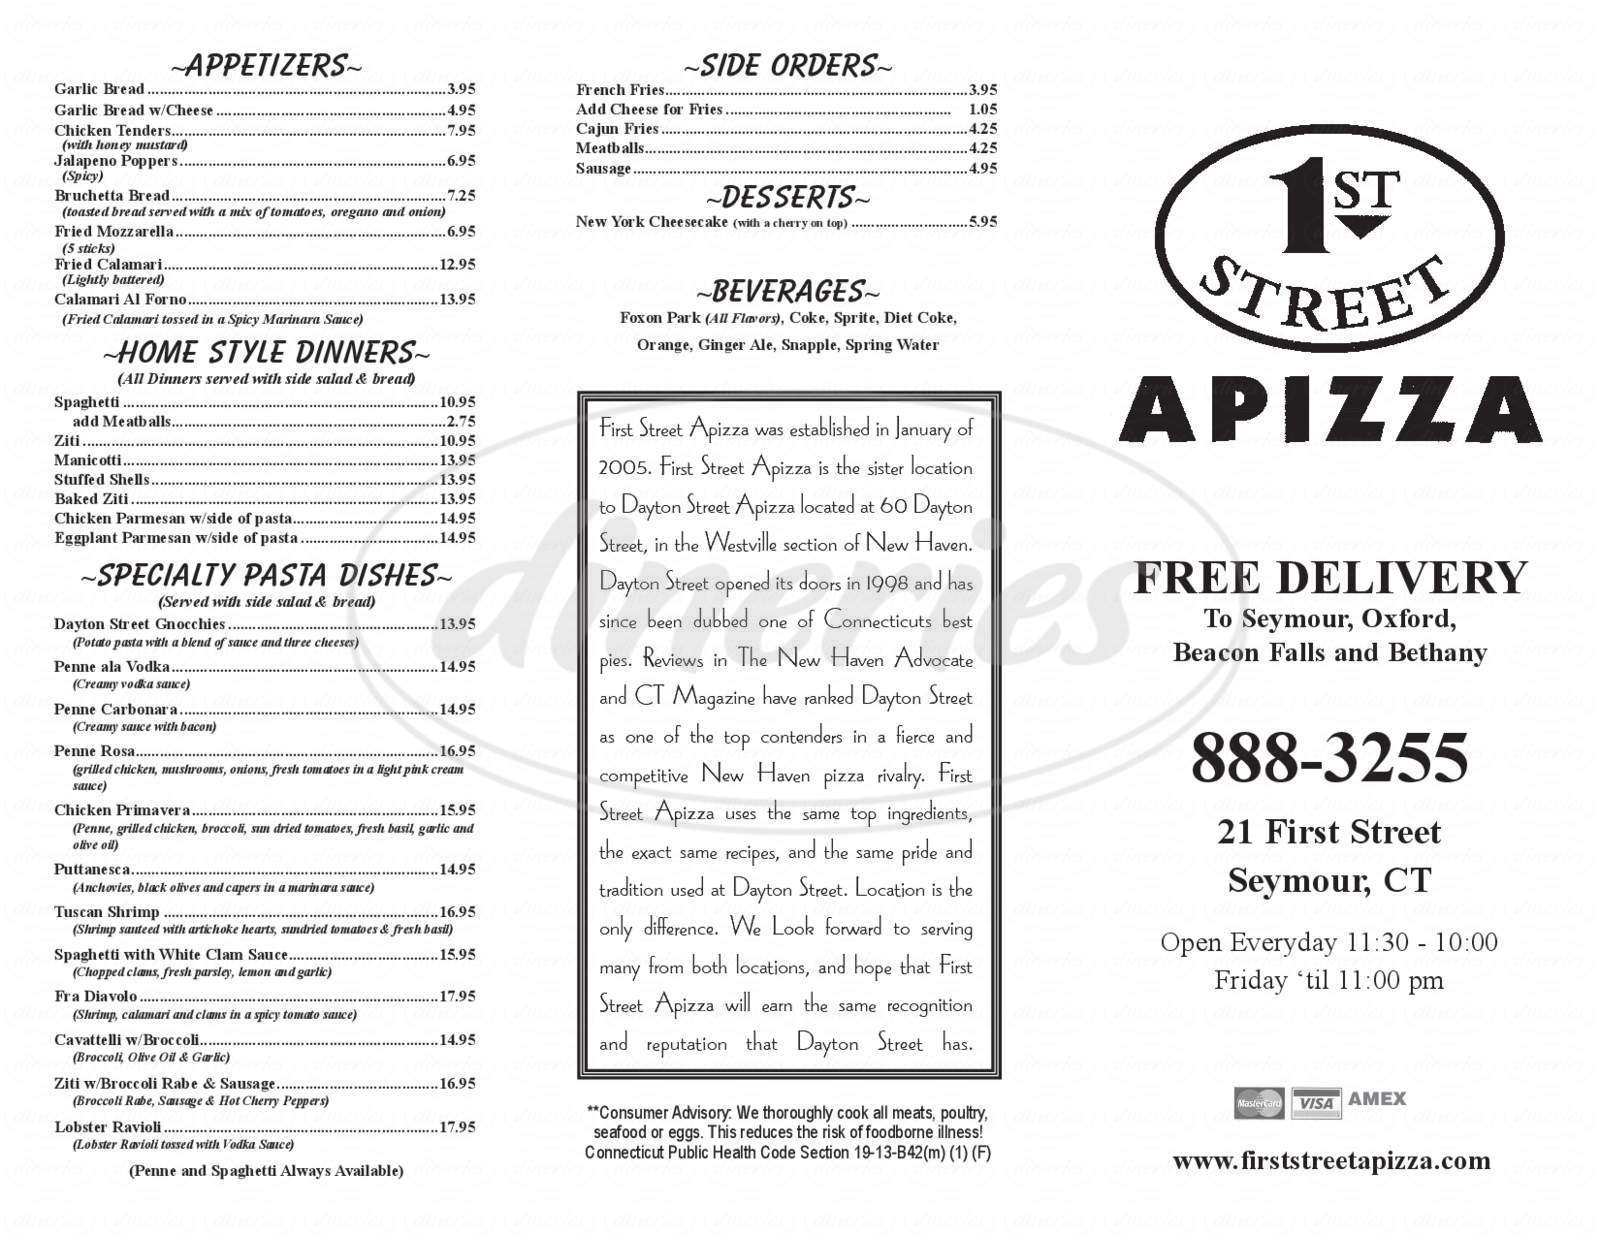 menu for First Street Apizza